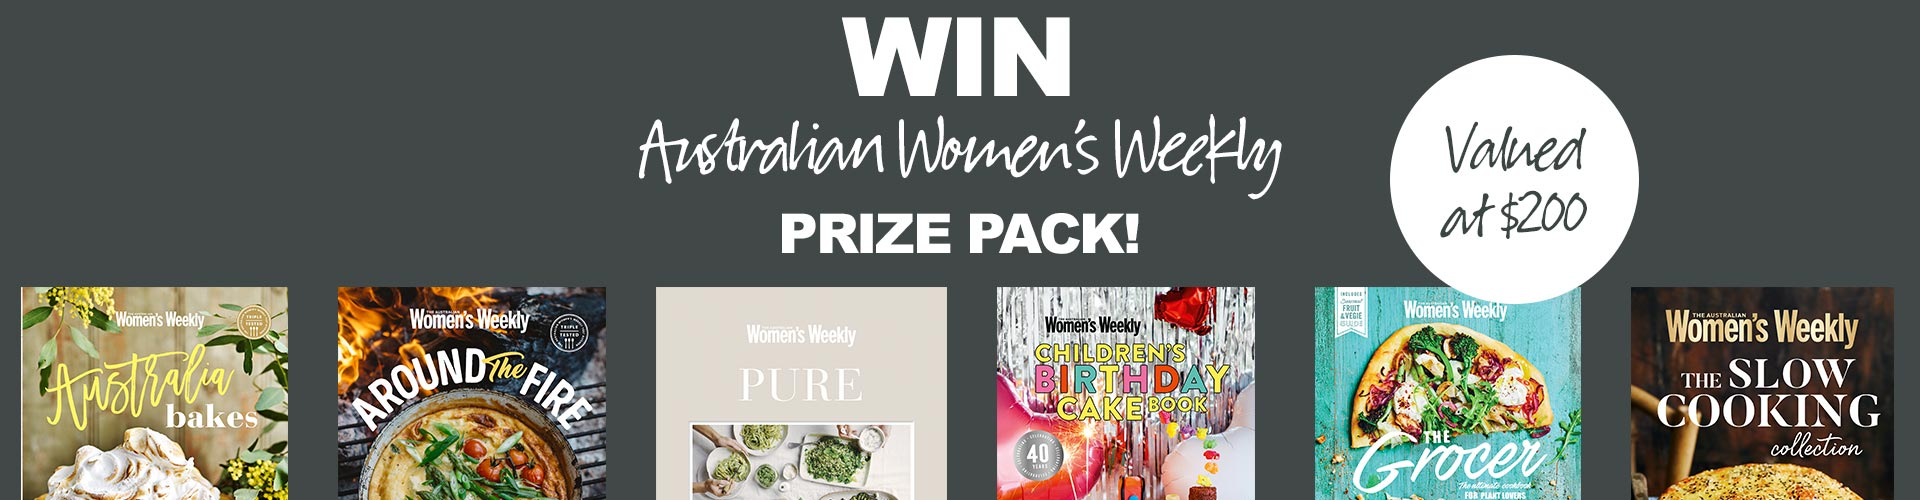 Australian Women's Weekly Wiltshire Competition